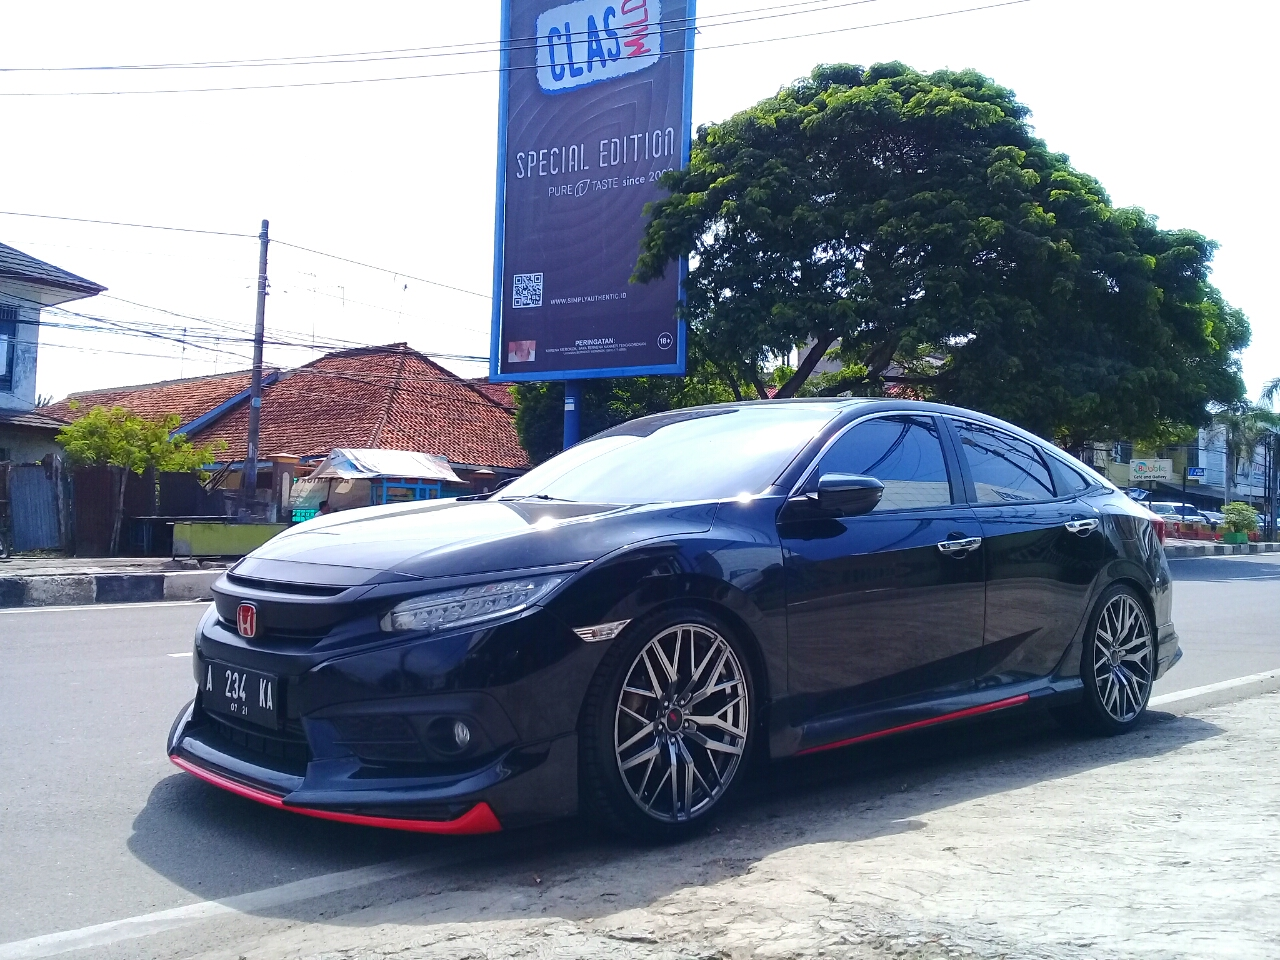 Civic Turbo Modif Velg Ring 20 Tampil Sporti